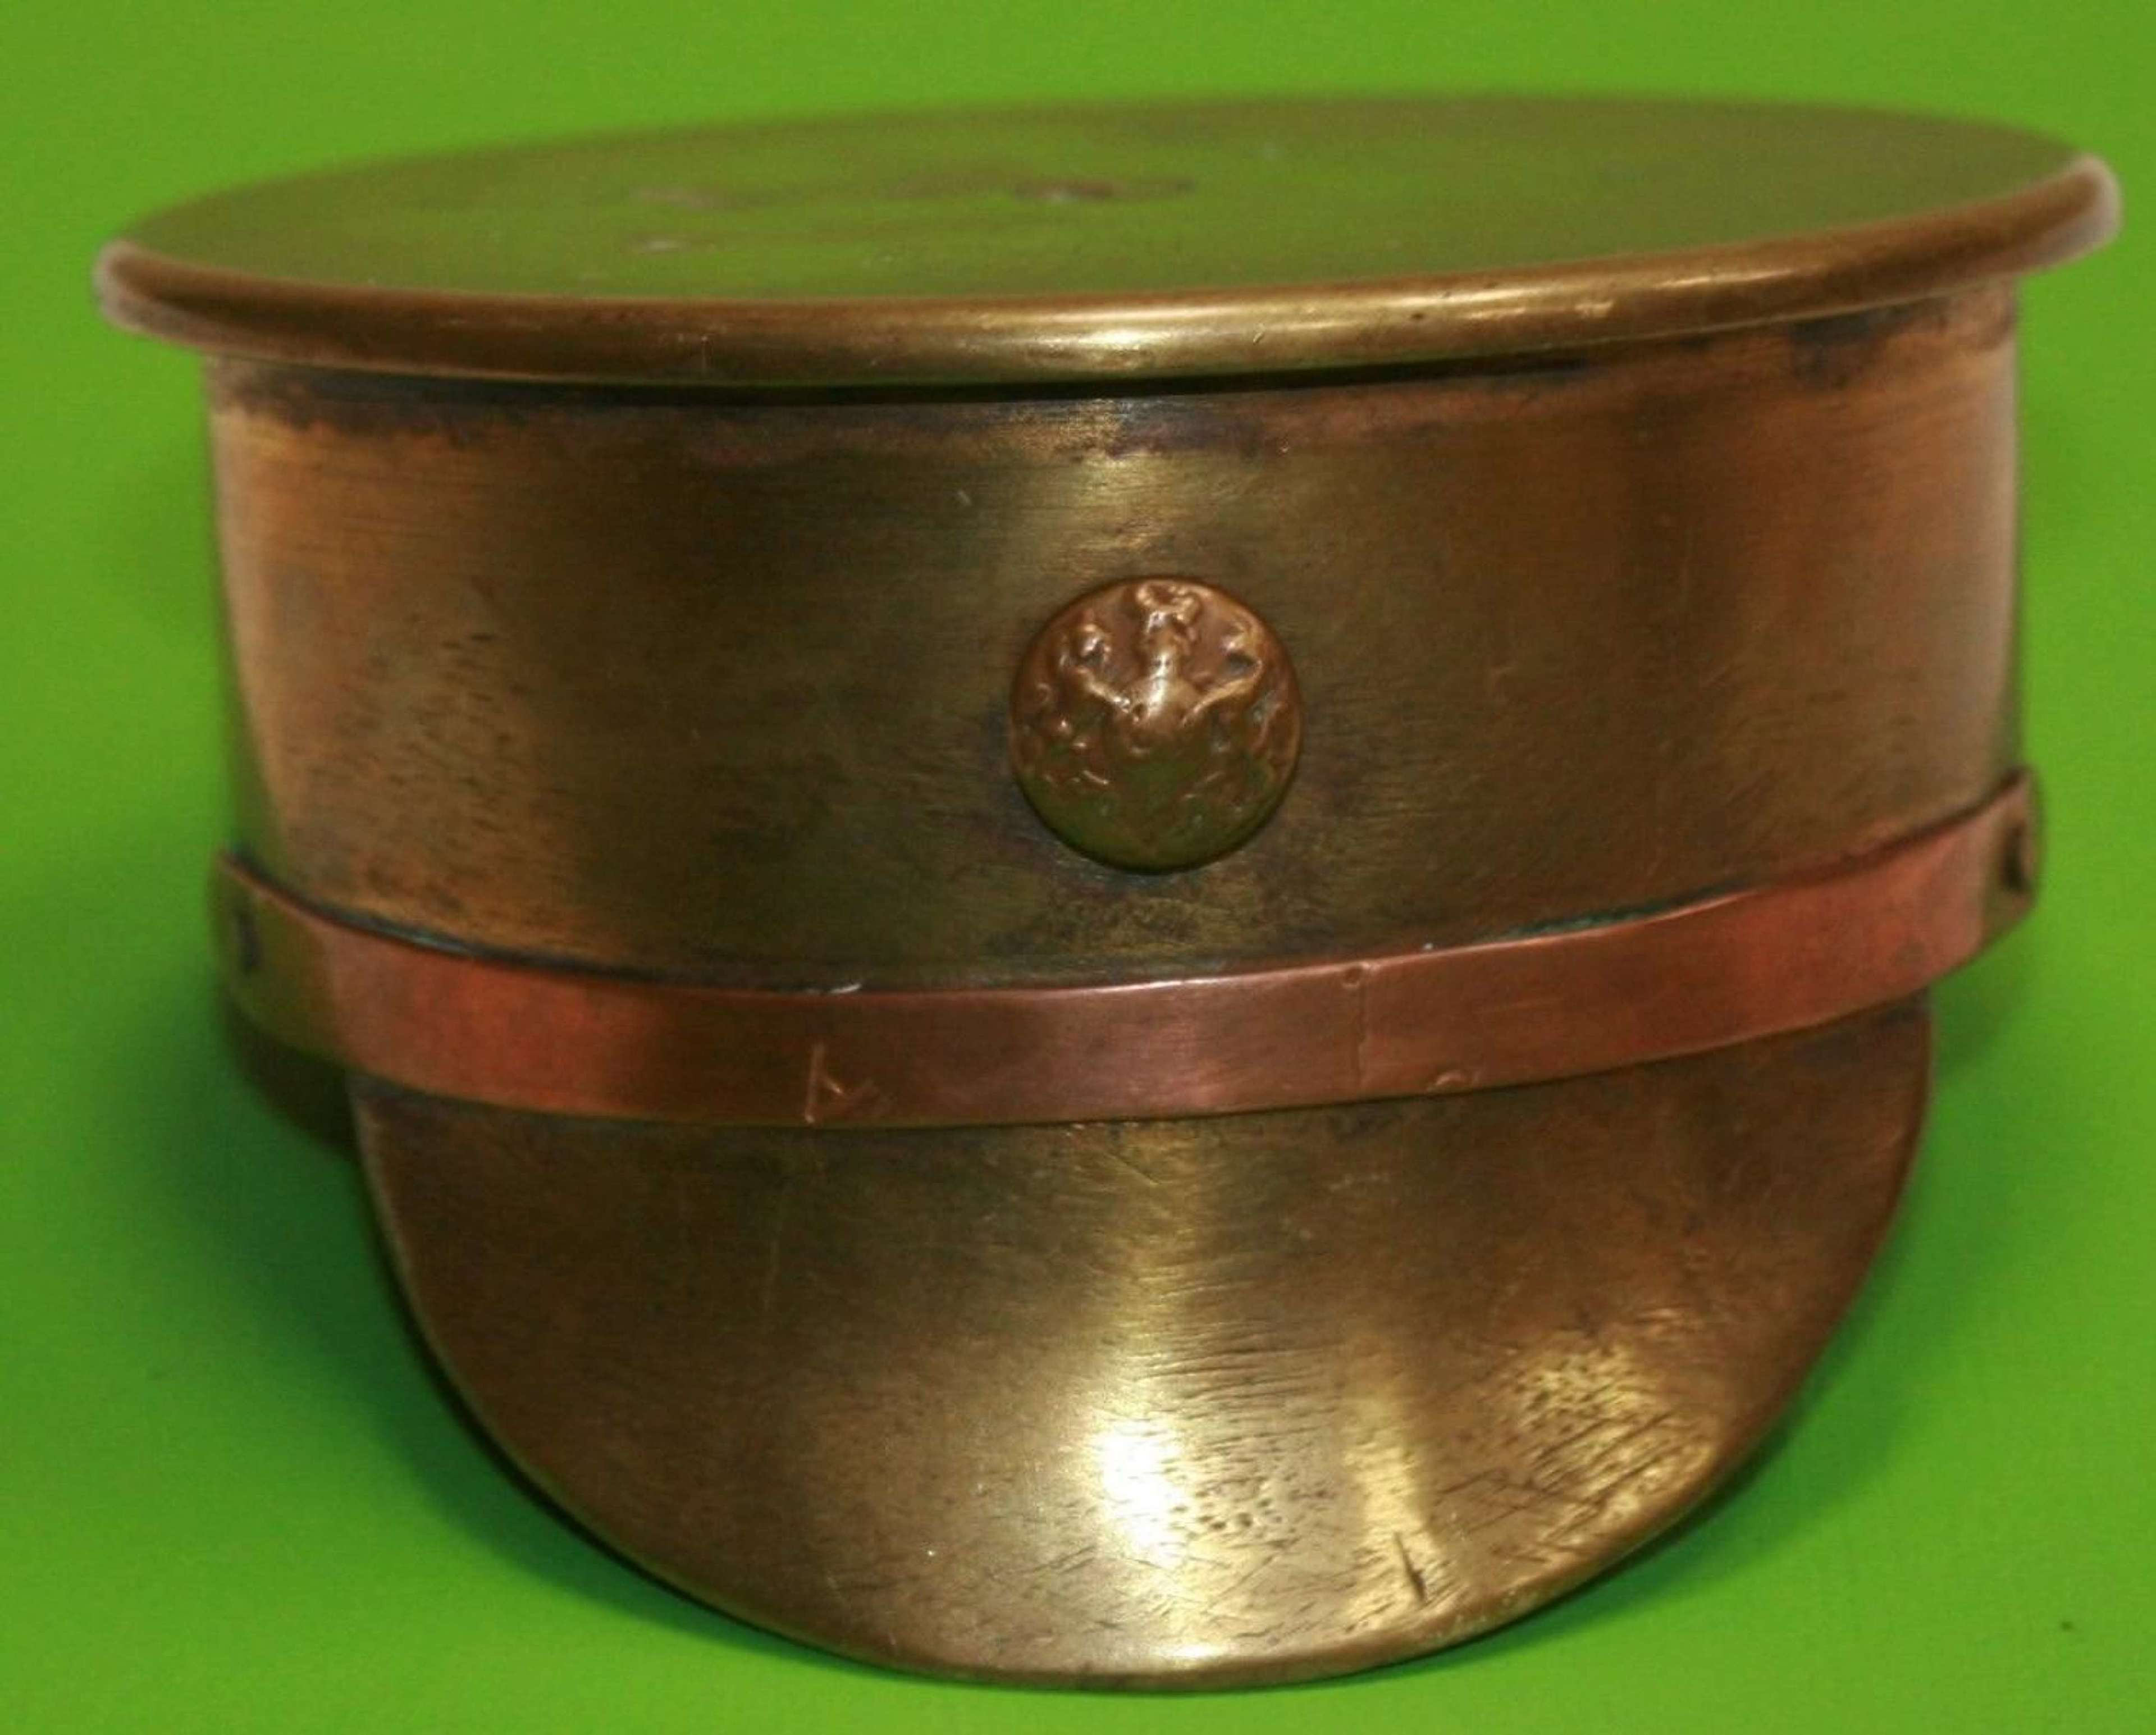 A 1917 DATED TRENCH ART CAP